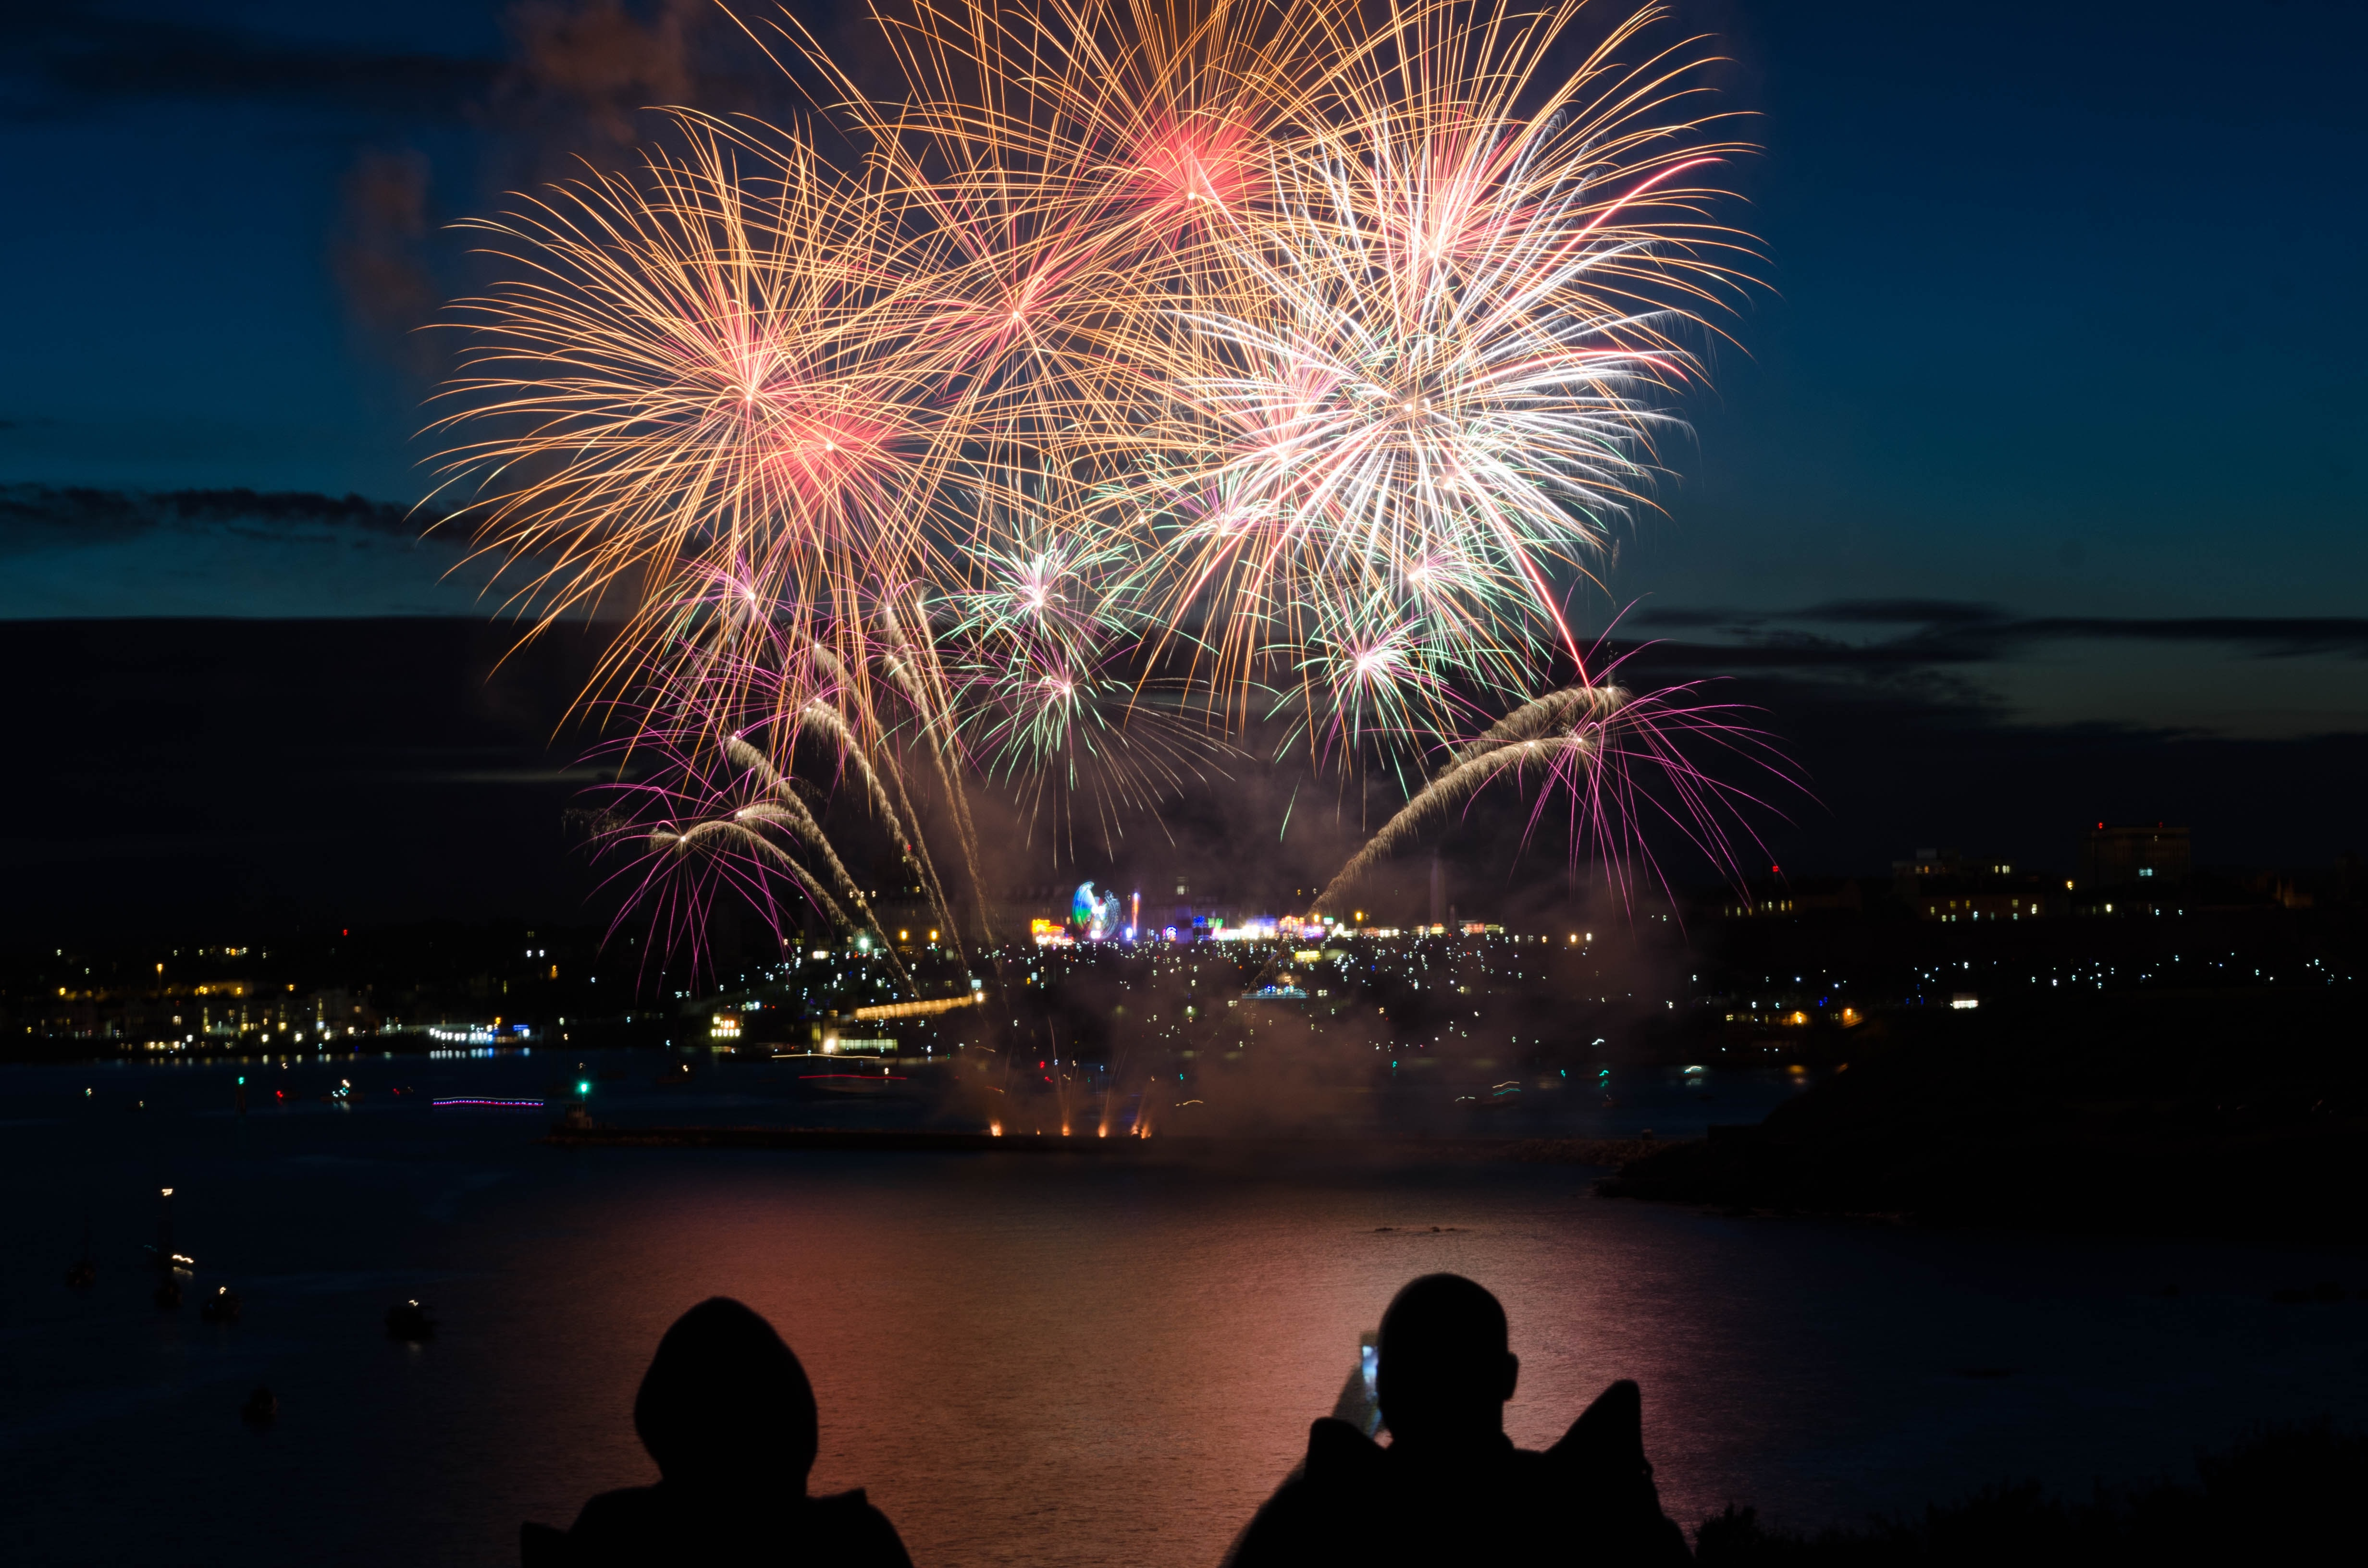 silhouette of two person taking photo of fireworks